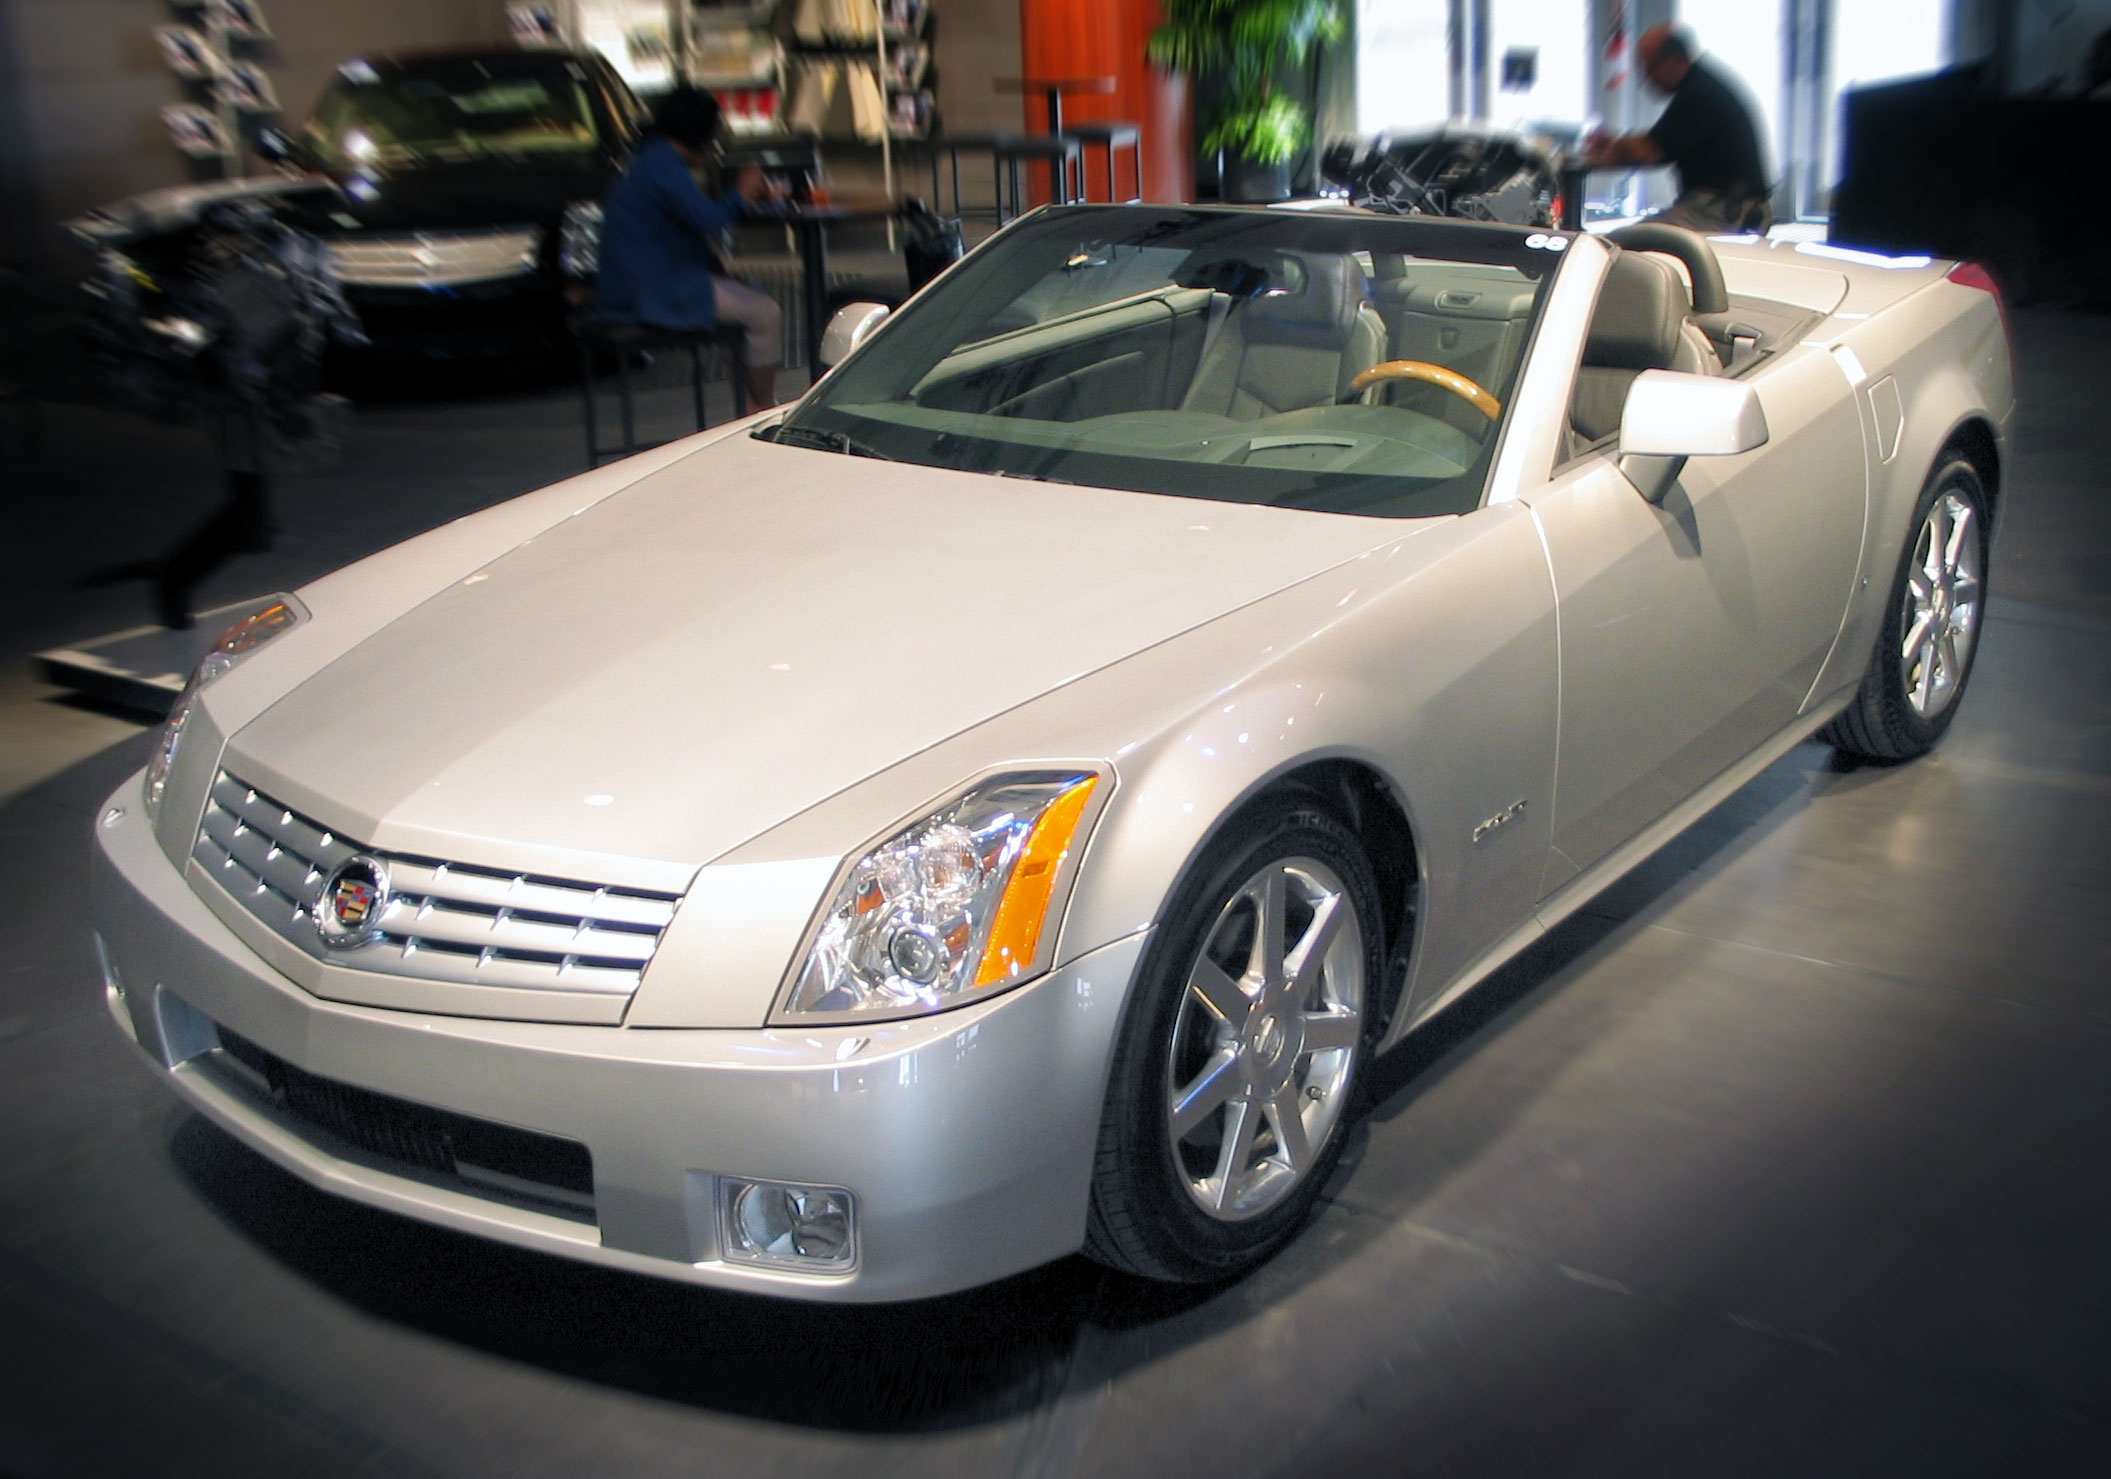 Wiring Diagram Cadillac Xlr - Wiring Diagrams Schematics